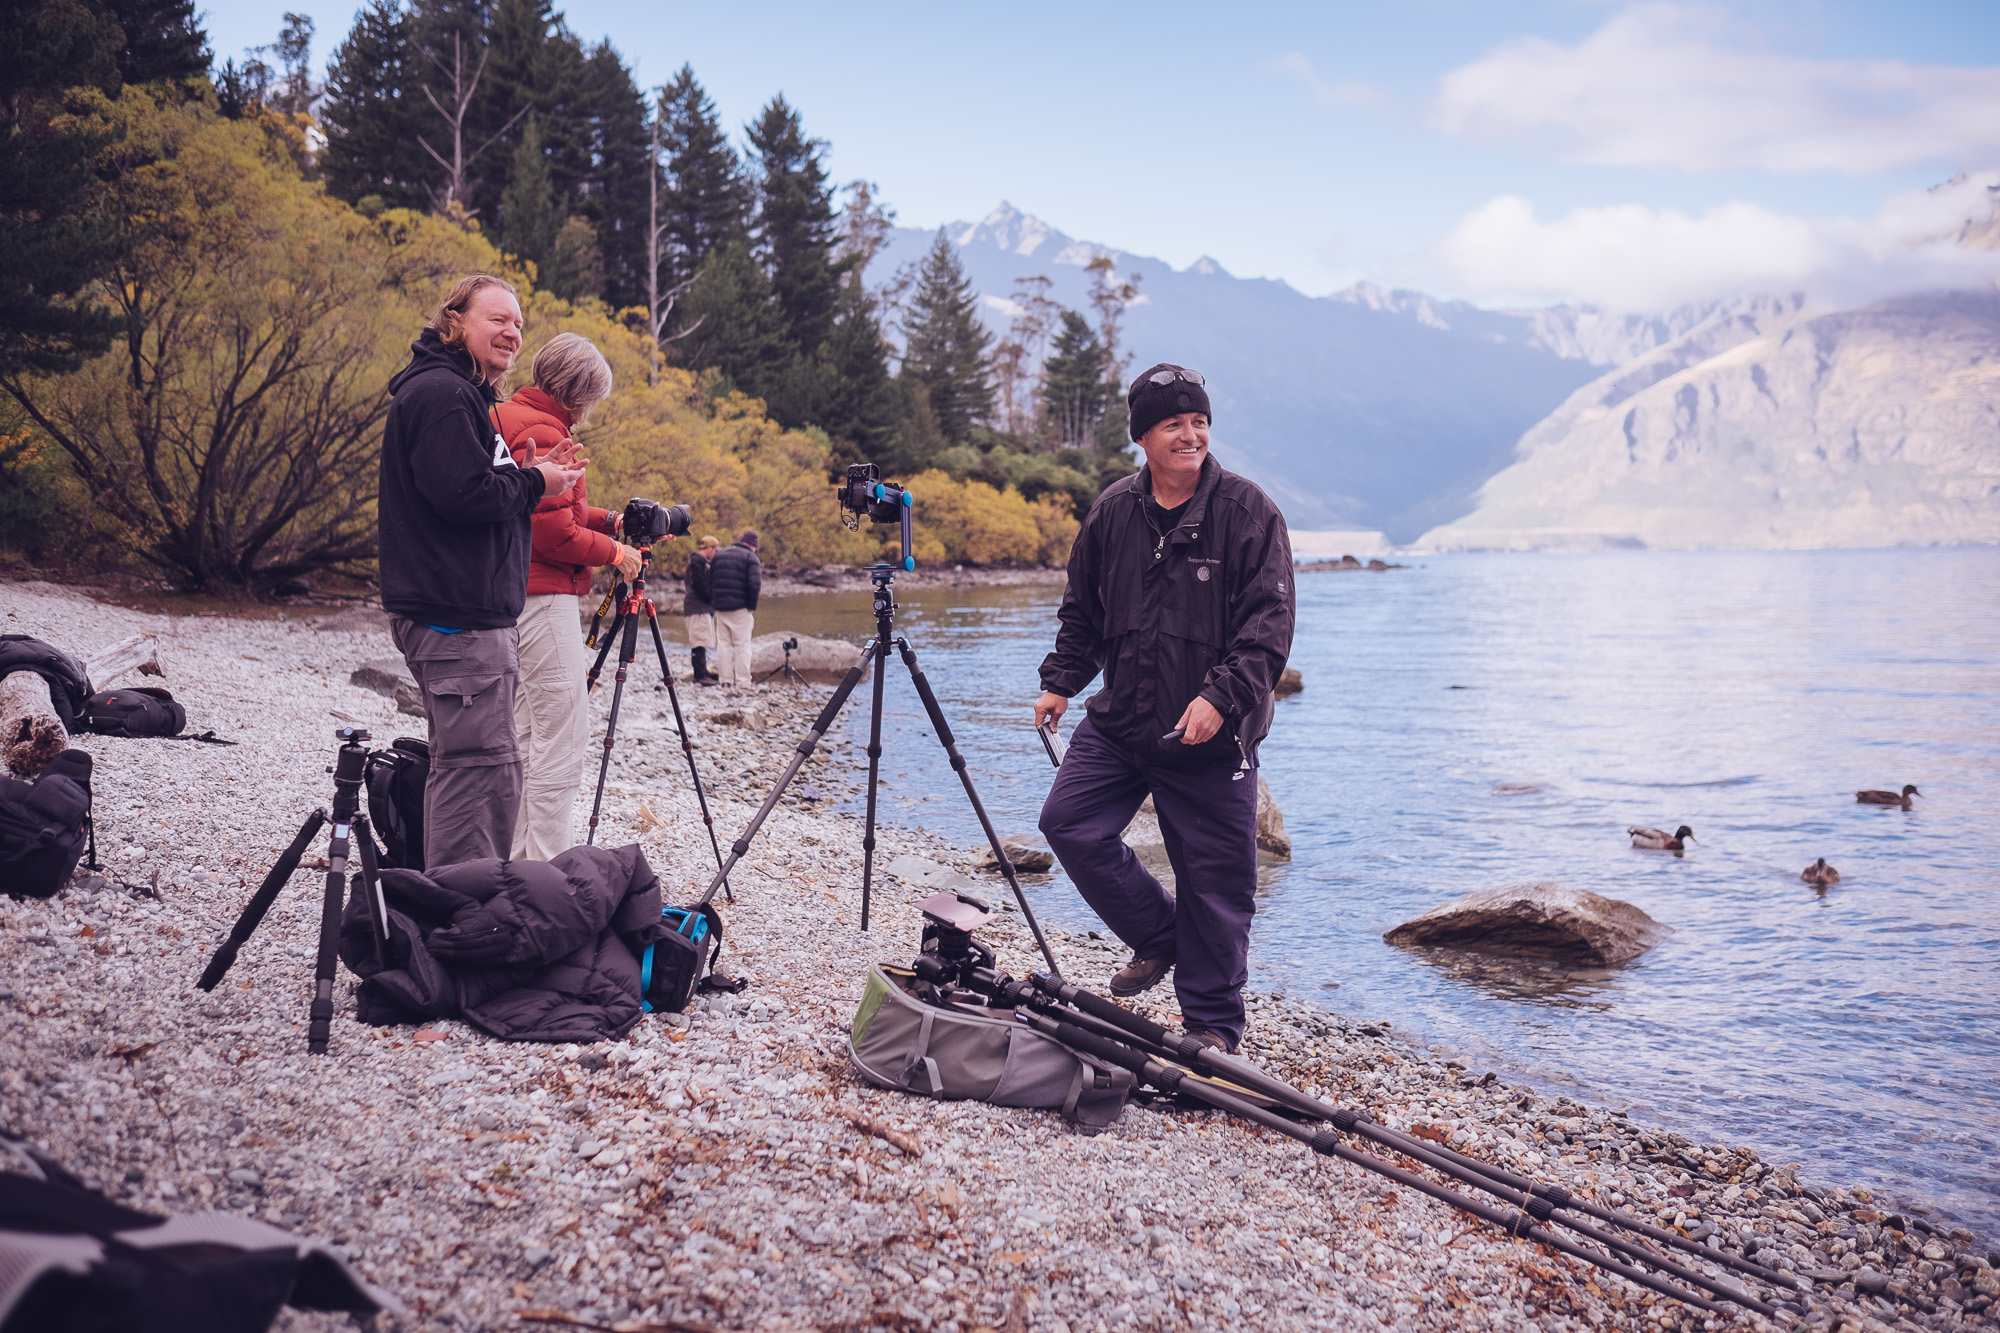 photography-workshops-queenstown-09.jpg